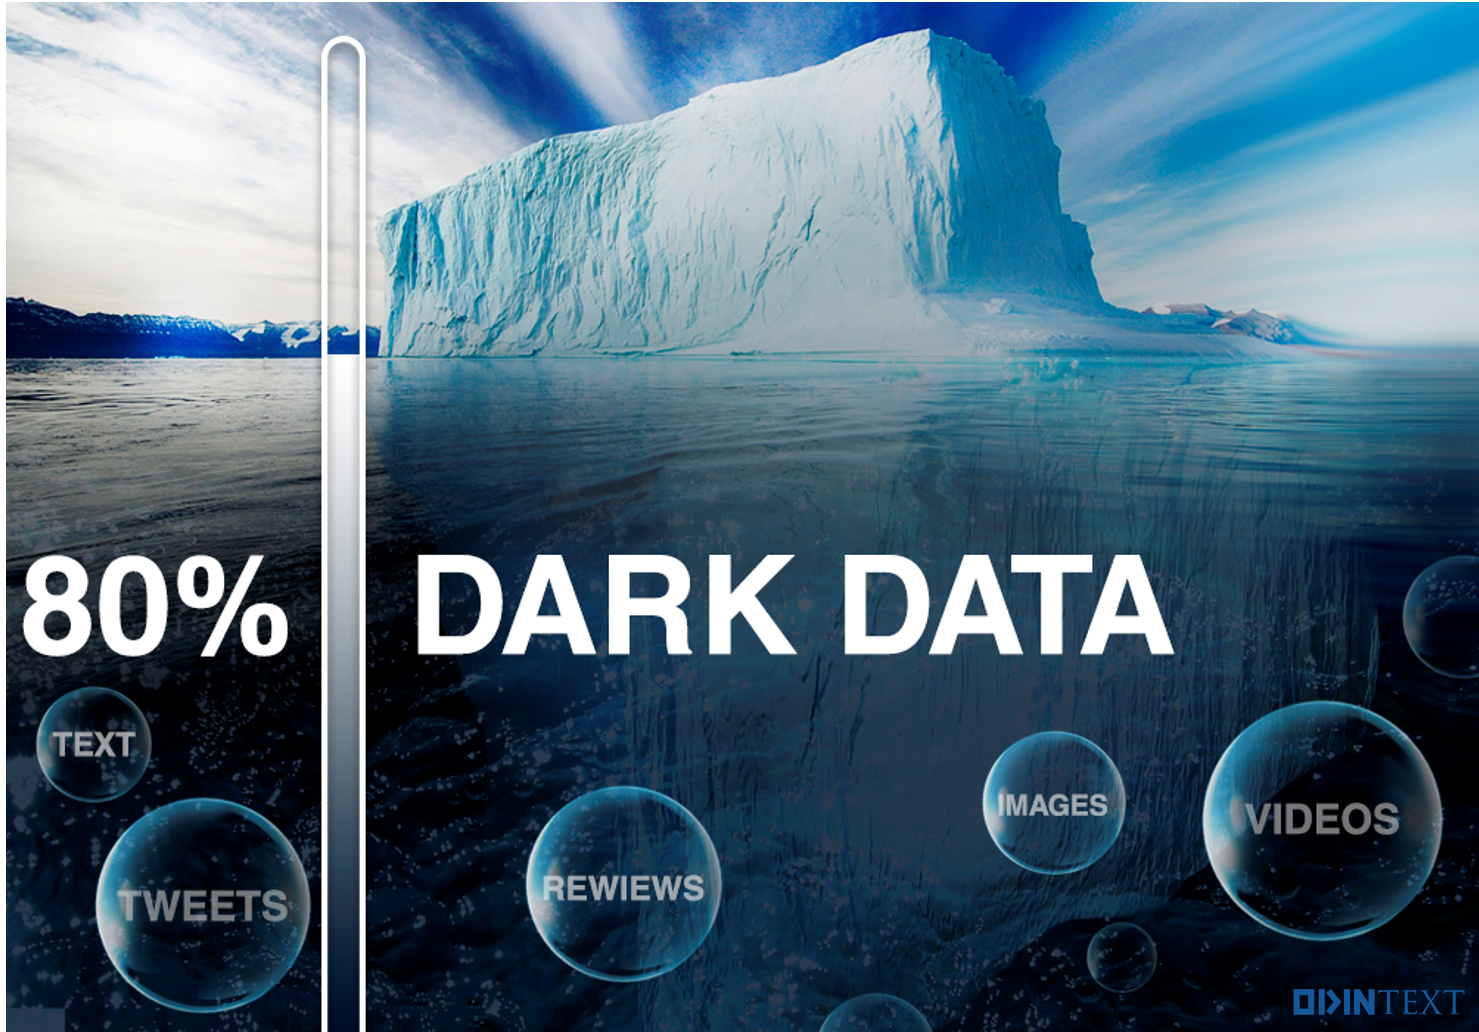 dark-data-text-aanalytics-ice-berg